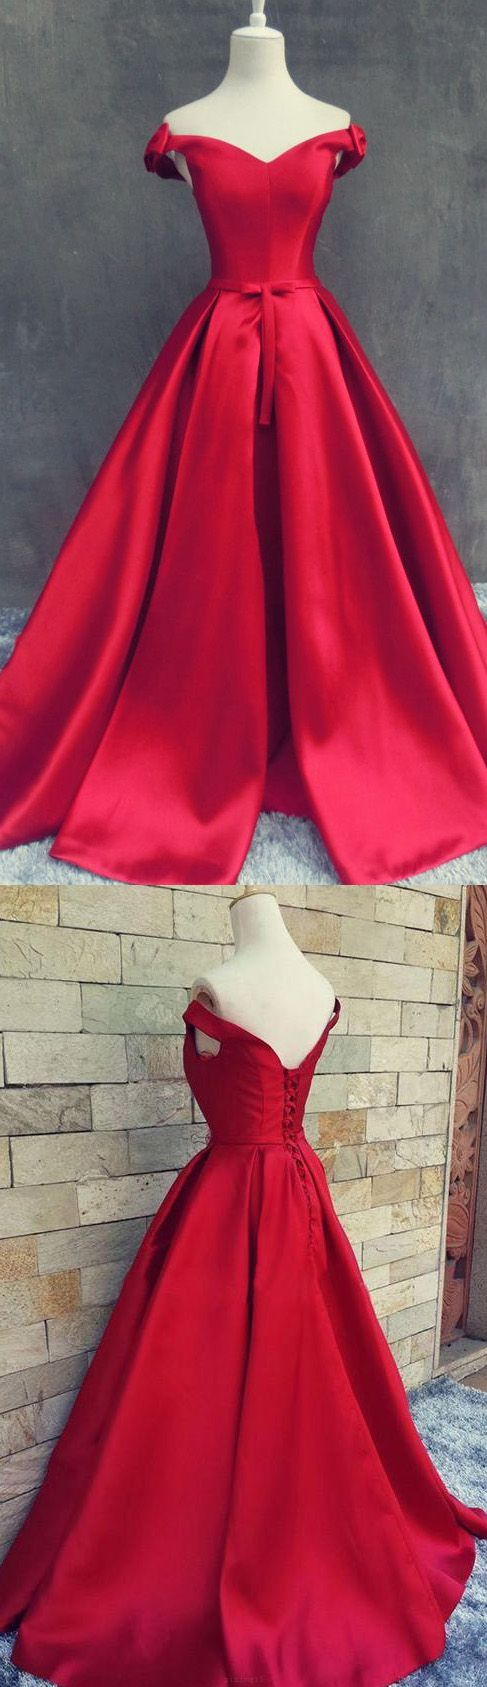 Red -  Prom shopping is alive and well on Pinterest. Compare prices for this @ Wrhel.com before you commit to buy. #Prom